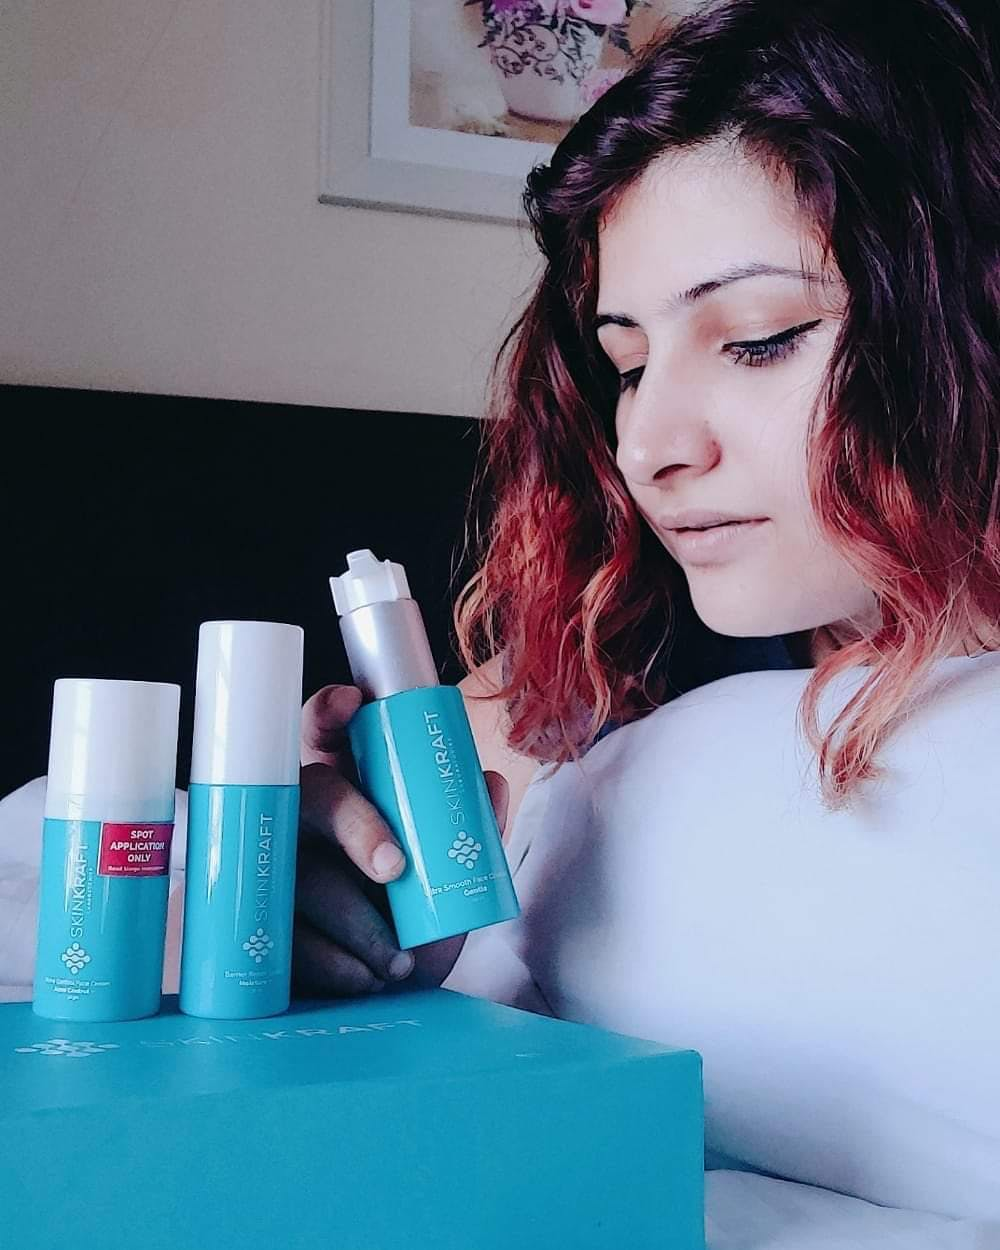 SkinKraft Personalised Beauty Care – Review